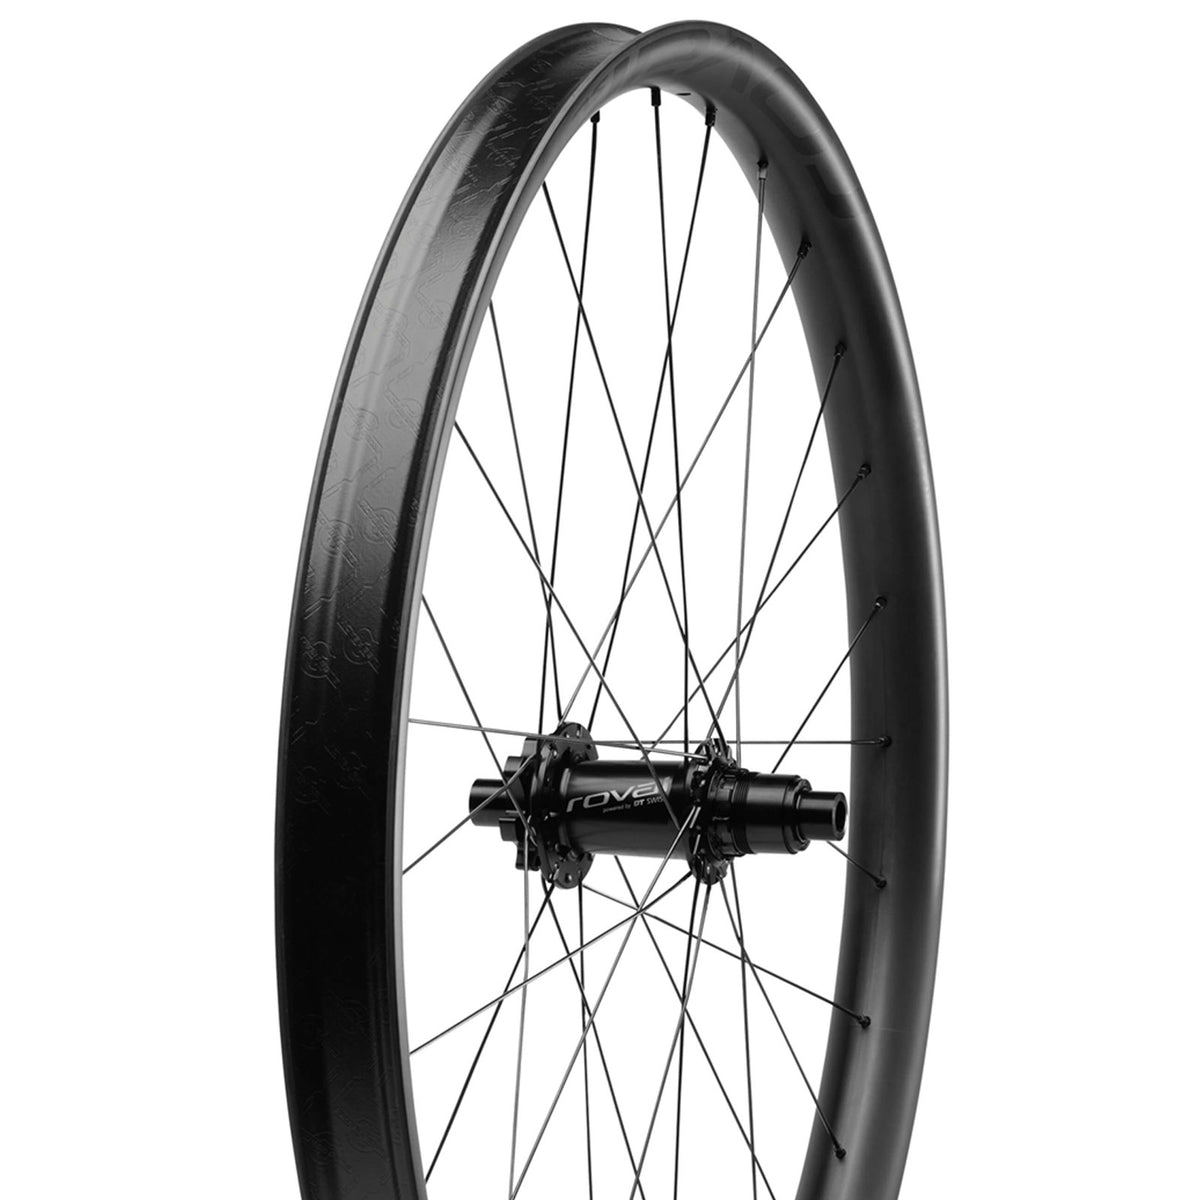 Traverse SL 38 rear wheel